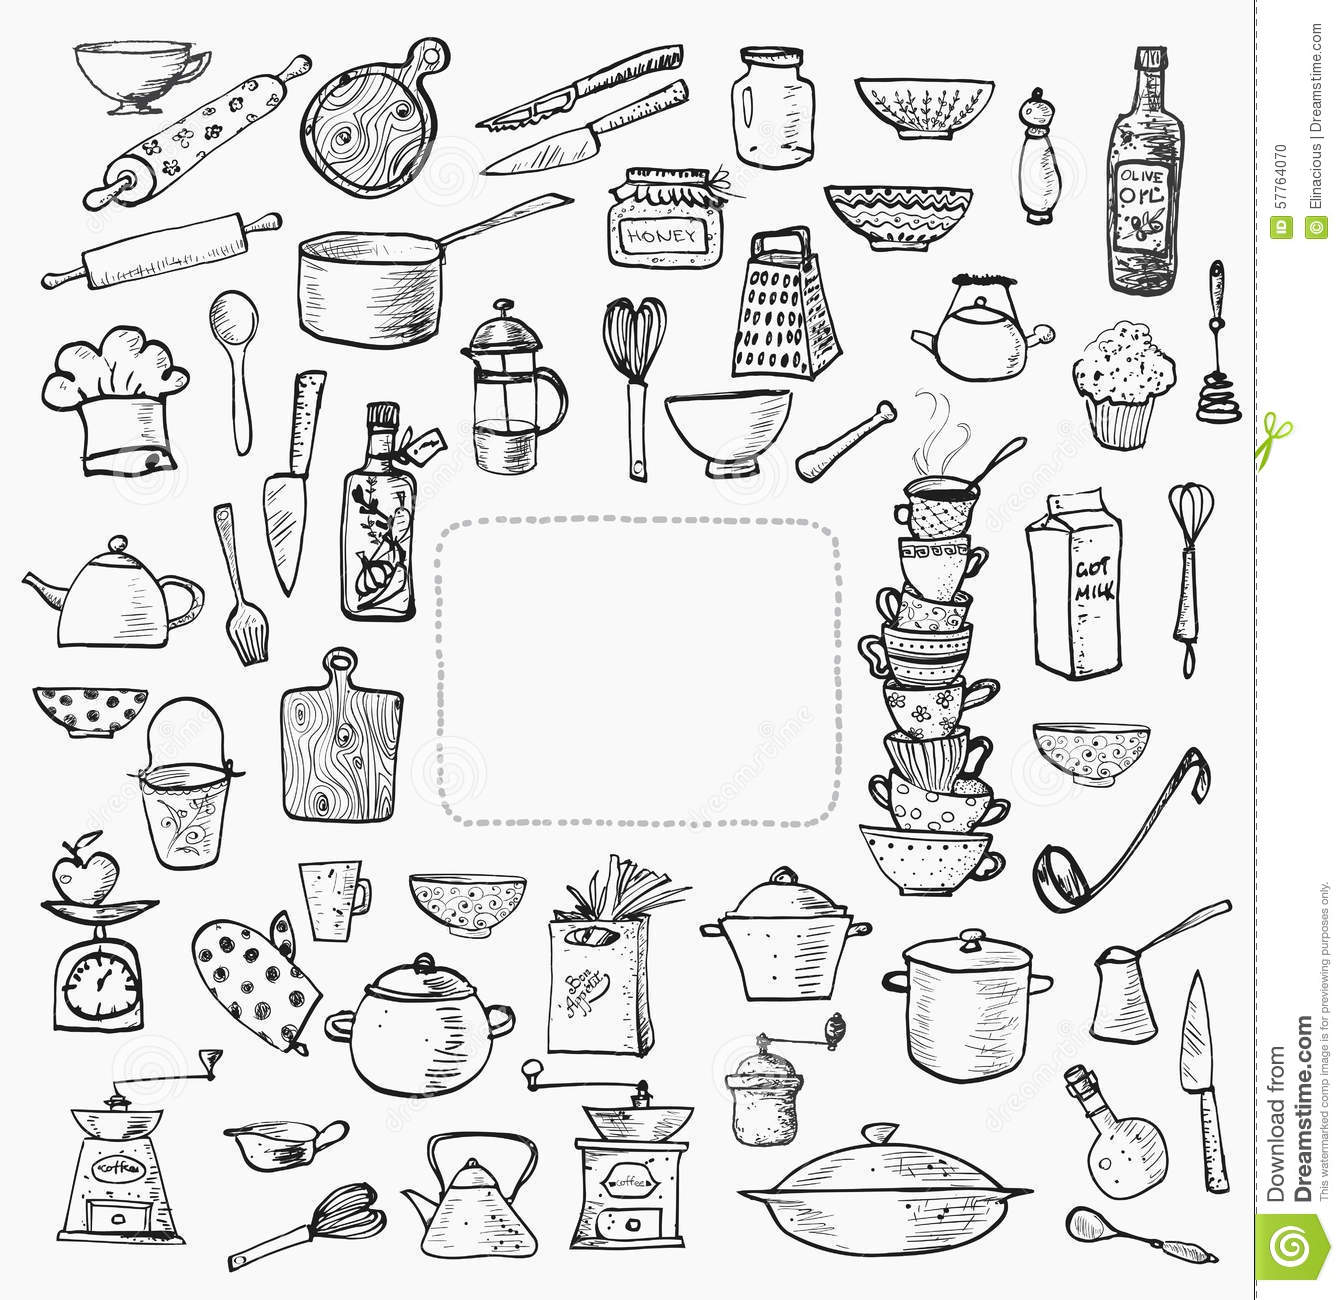 21 kitchen tools colourin hand drawn doodle cooking set kitchen